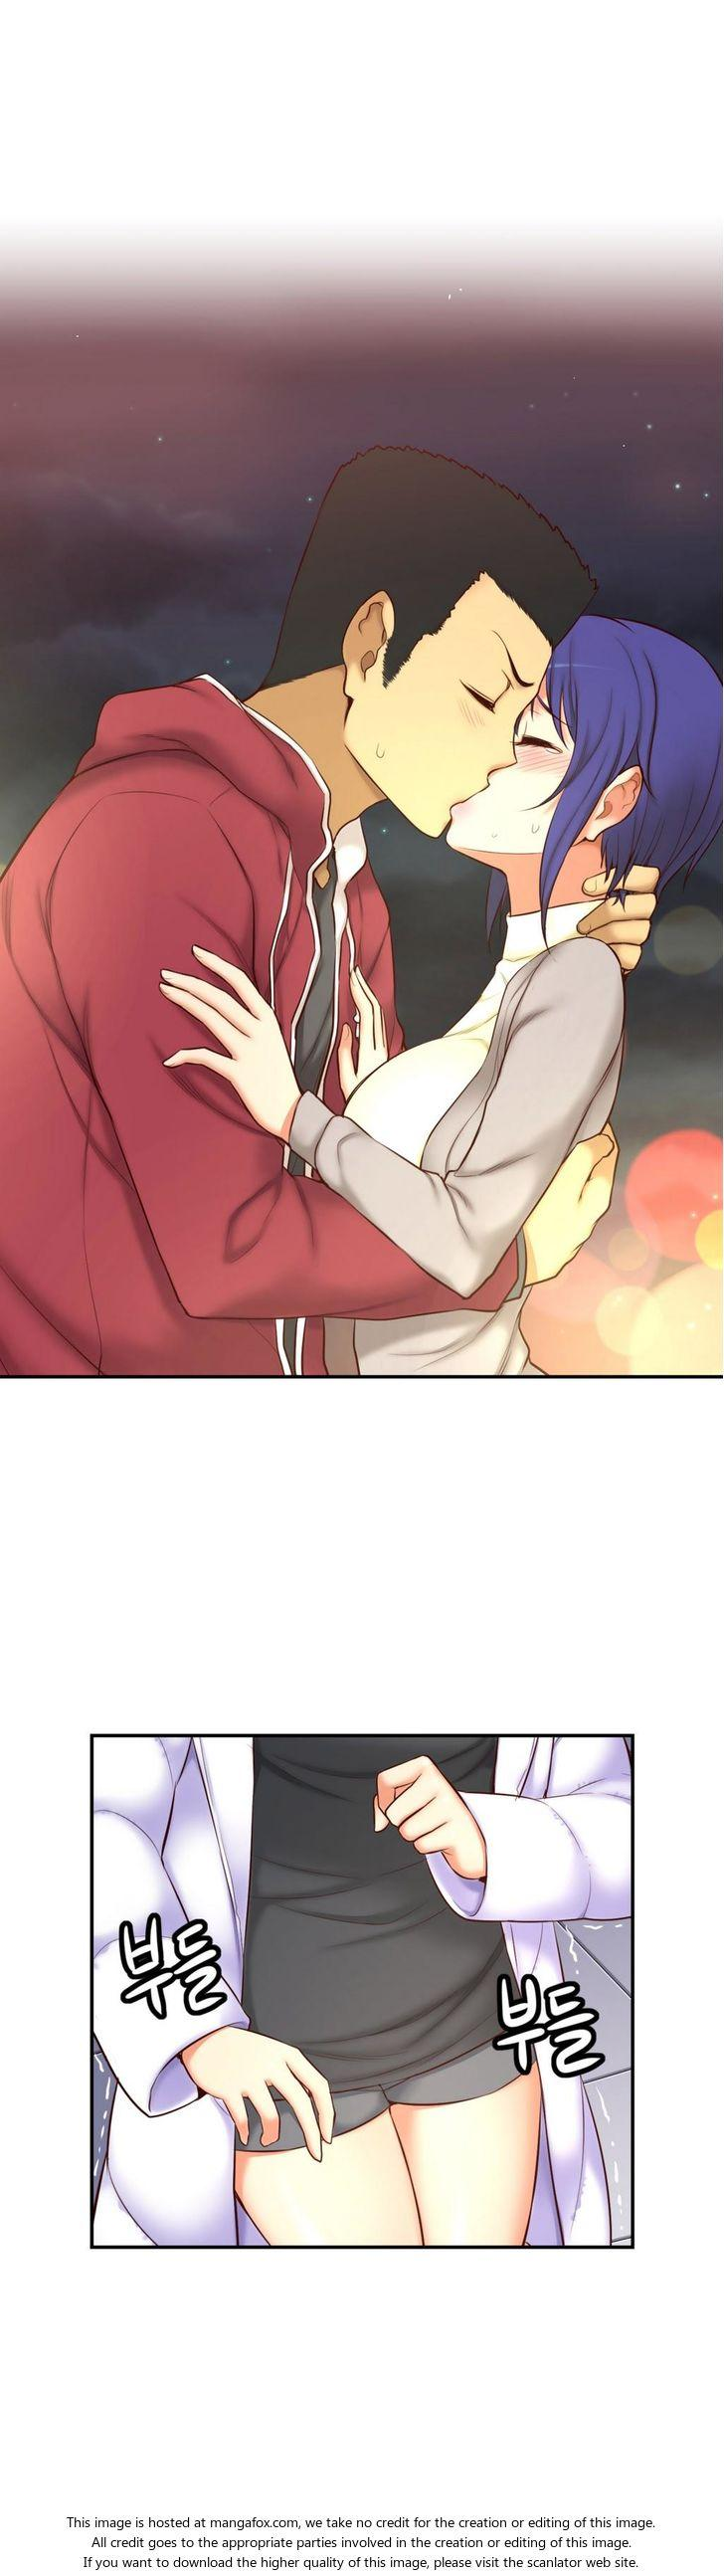 [Donggul Gom] She is Young (English) Part 1/2 1145